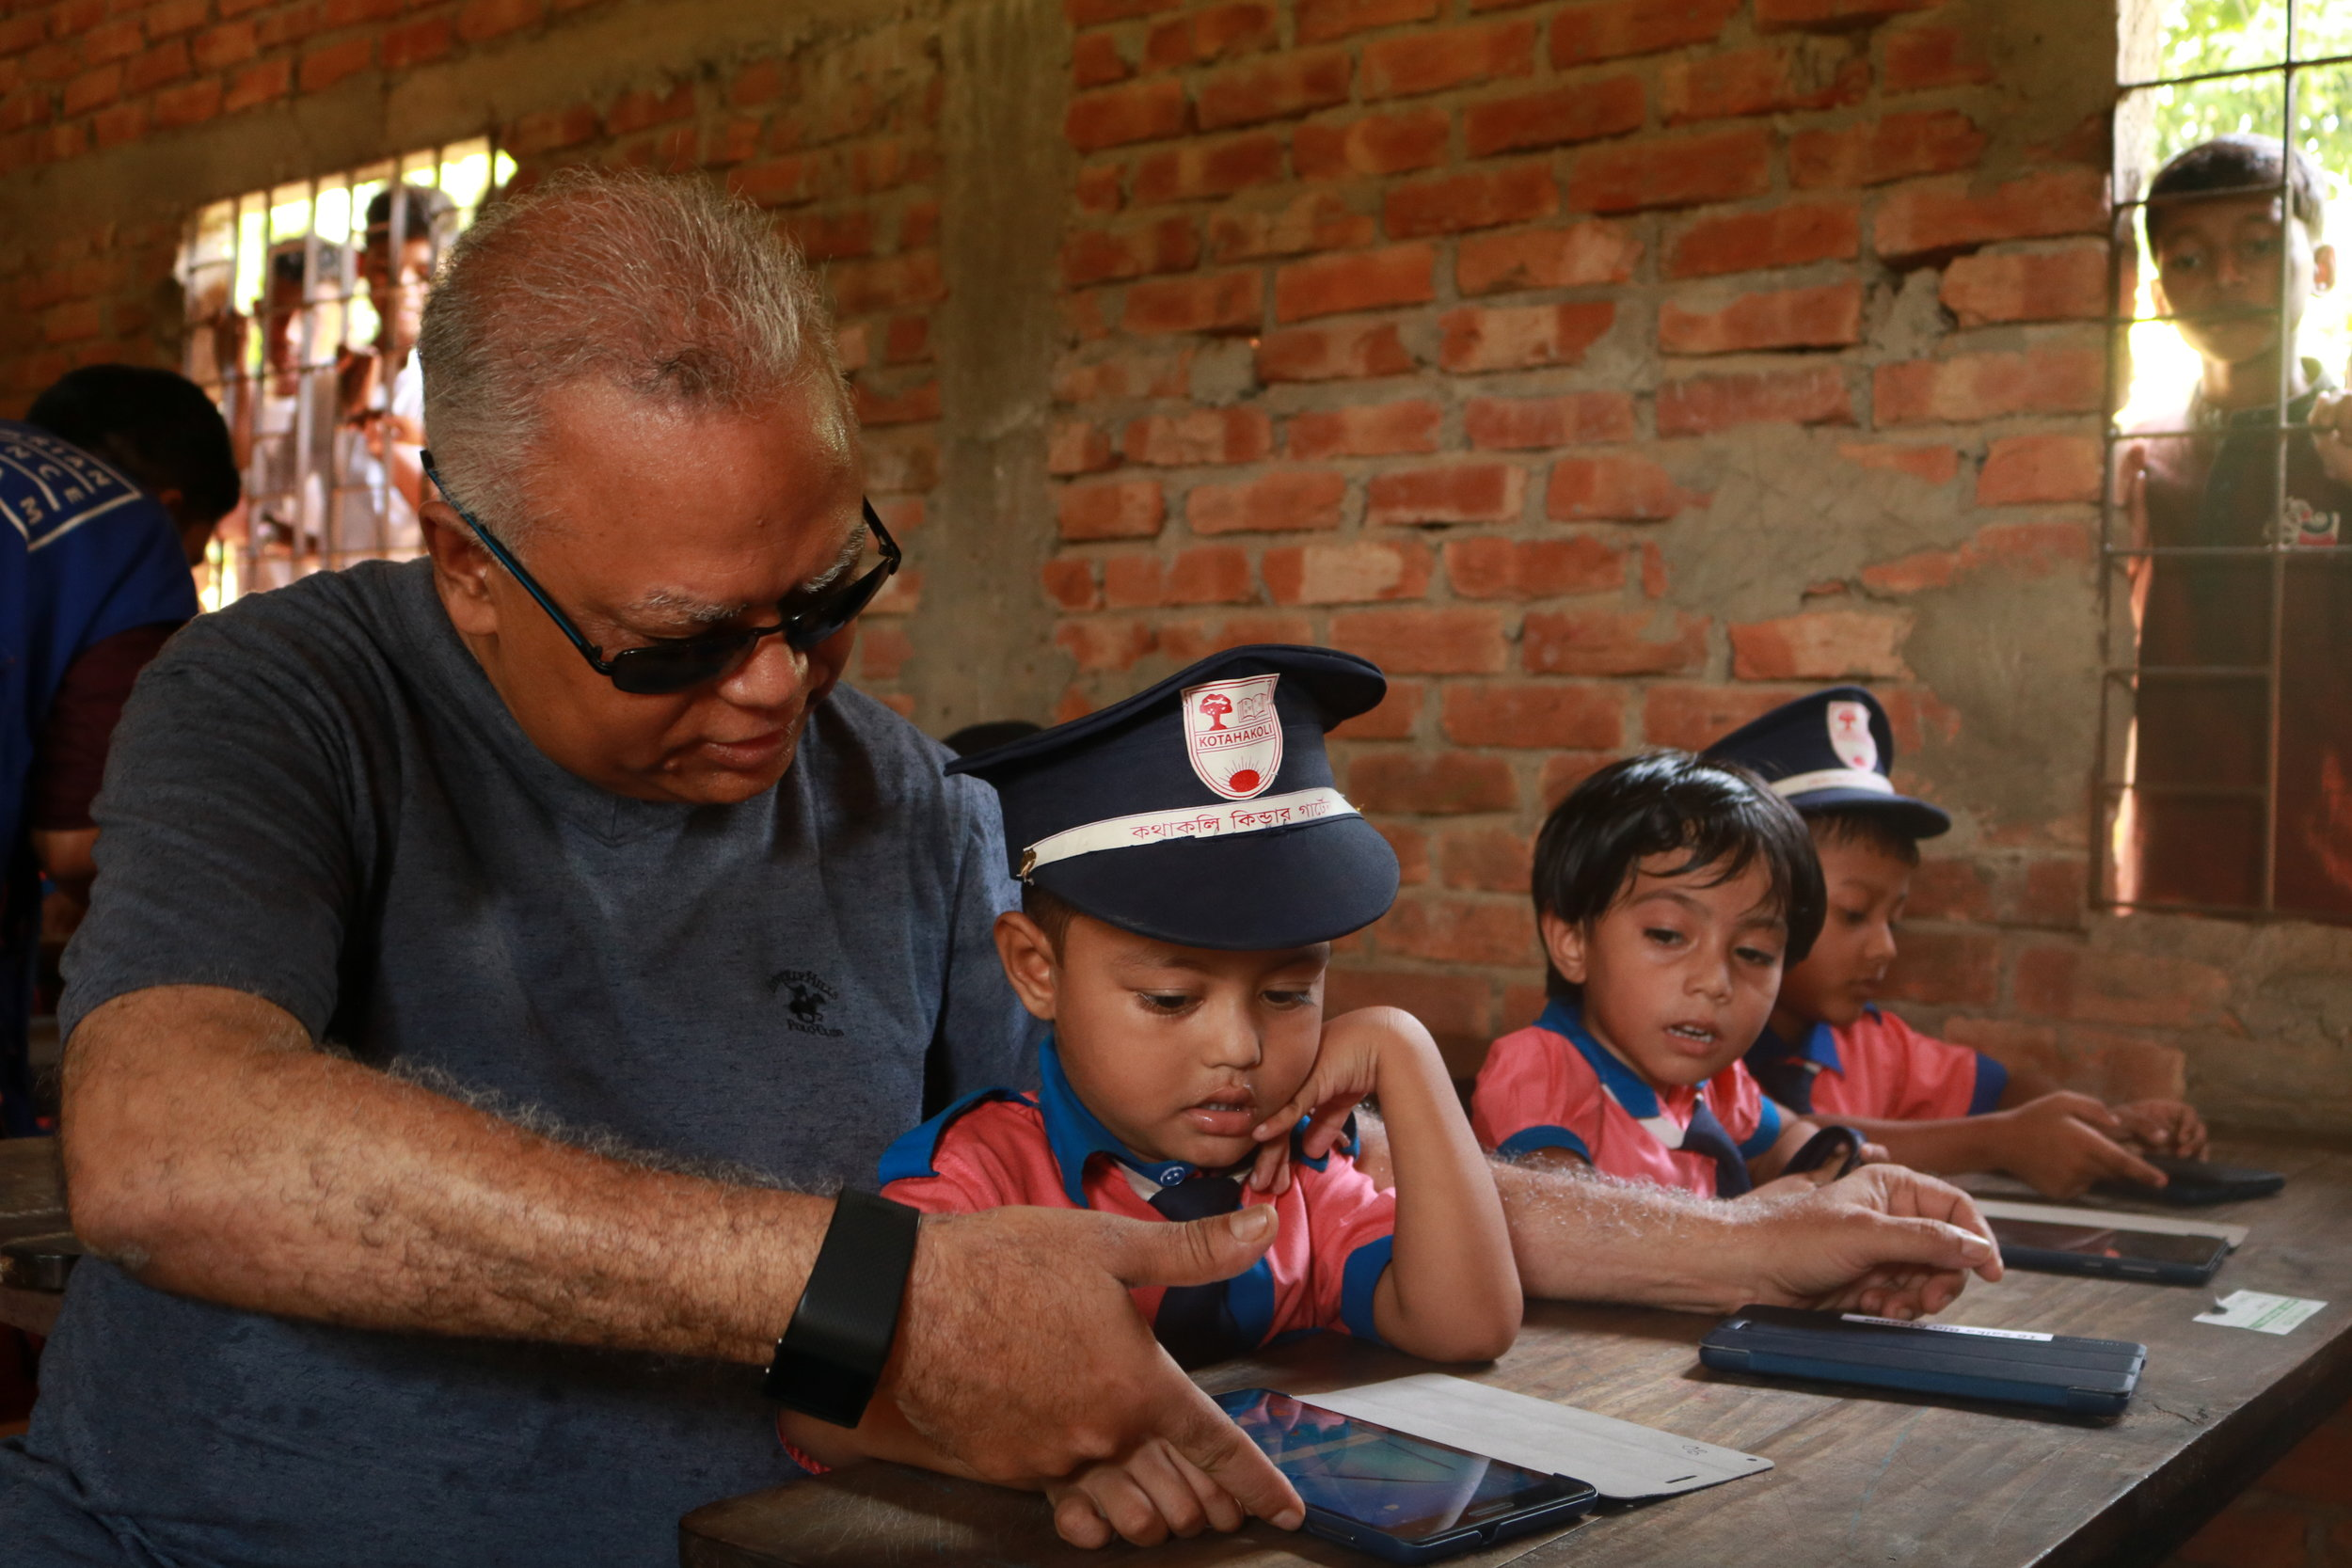 OBAT Helpers CEO Anwar Khan assists a young student during a site visit